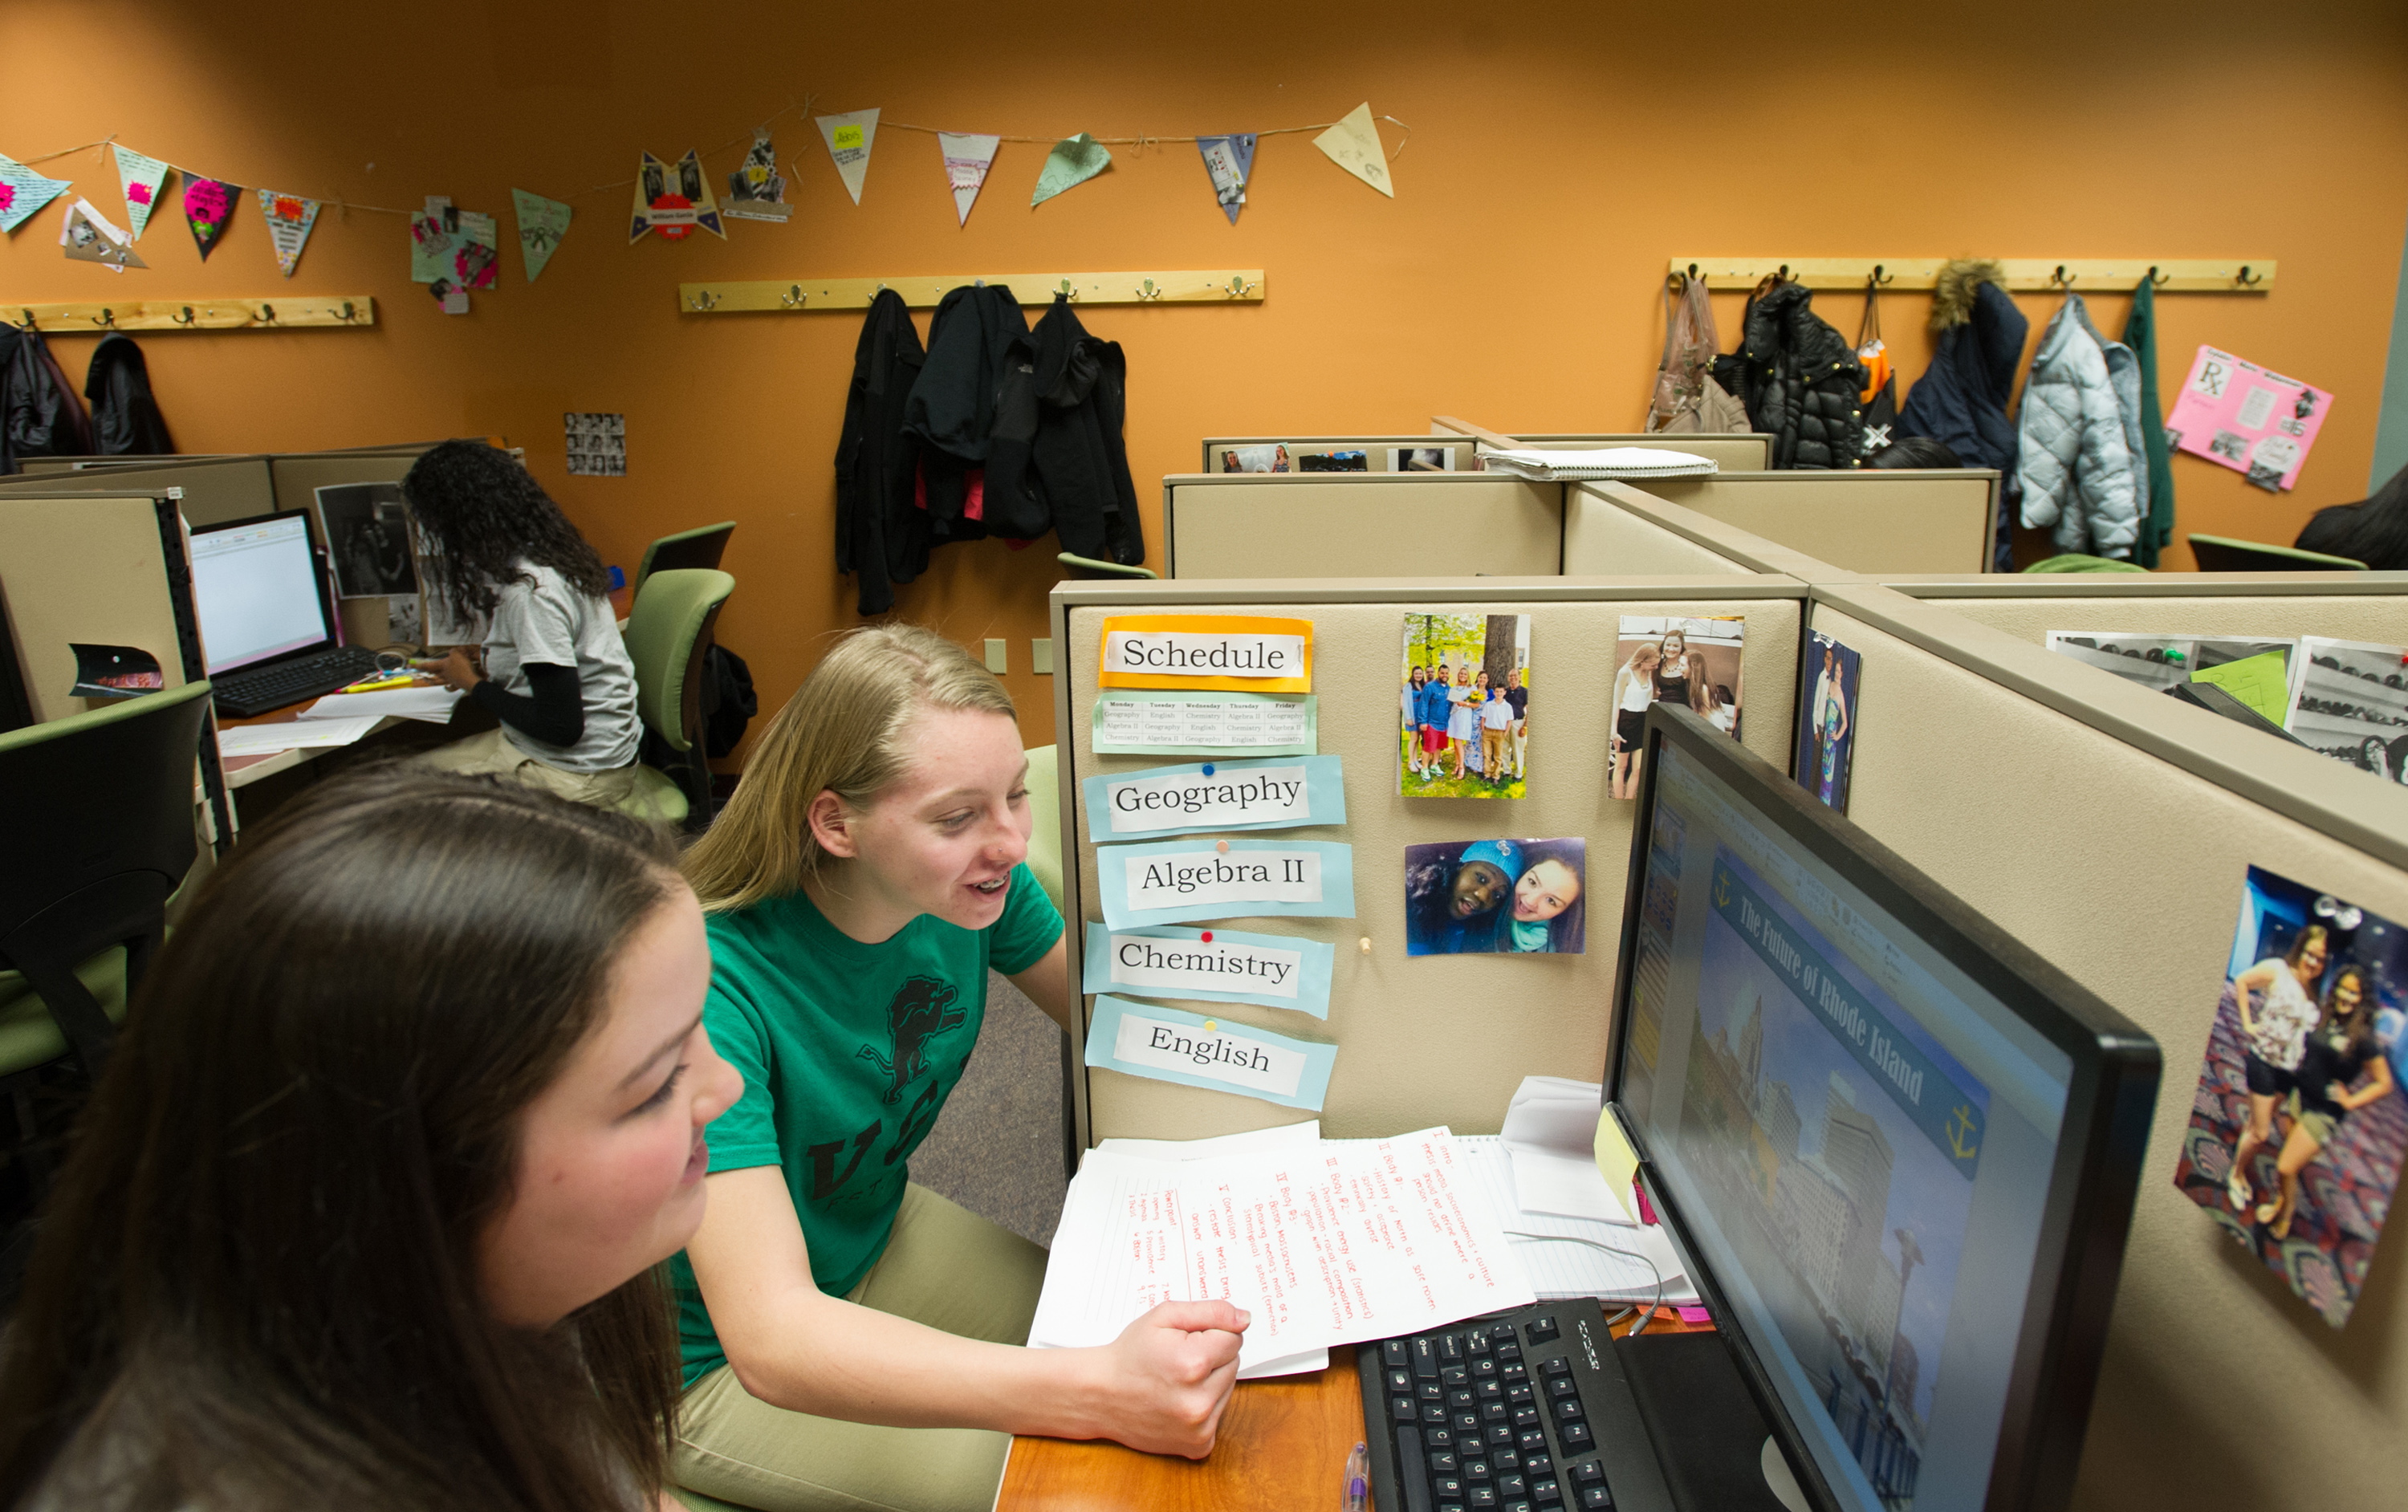 rhode island u2019s lively experiment with blended learning